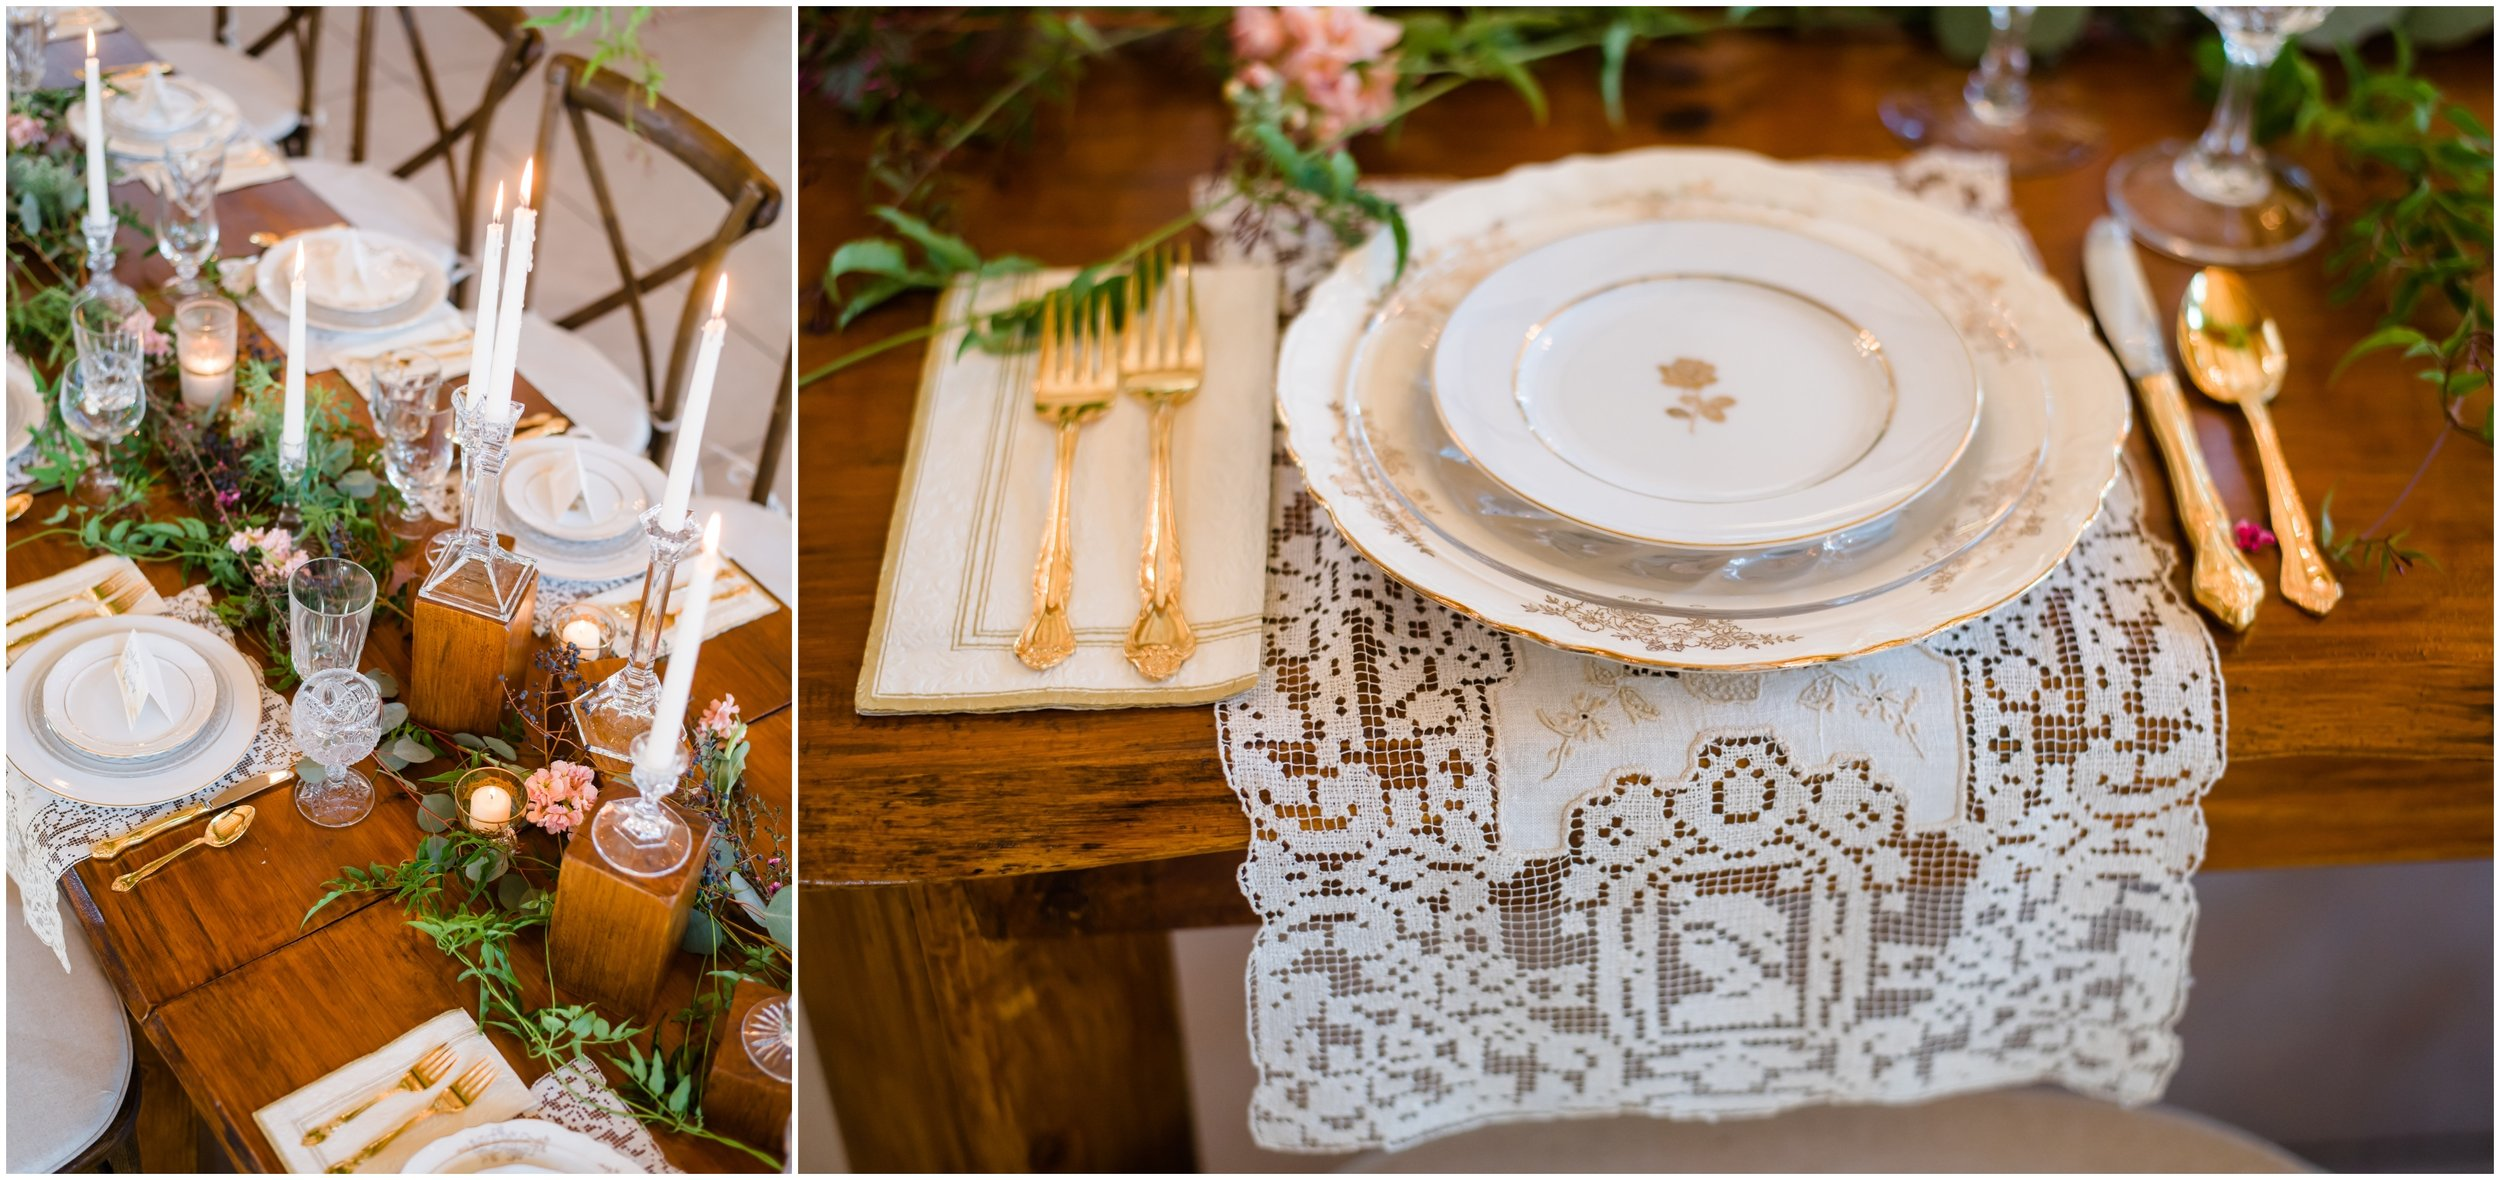 PHOTOGRAPHY -  NELYA , VENUE -  HIWASSEE RIVER WEDDINGS , FLORALS -  FOX & FERN STYLE , CALLIGRAPHY -  DAFFOLILY , CROSS BACK CHAIRS -  LUMA DESIGNS , VINTAGE RENTALS + DESIGN -  THE COPPER QUAIL